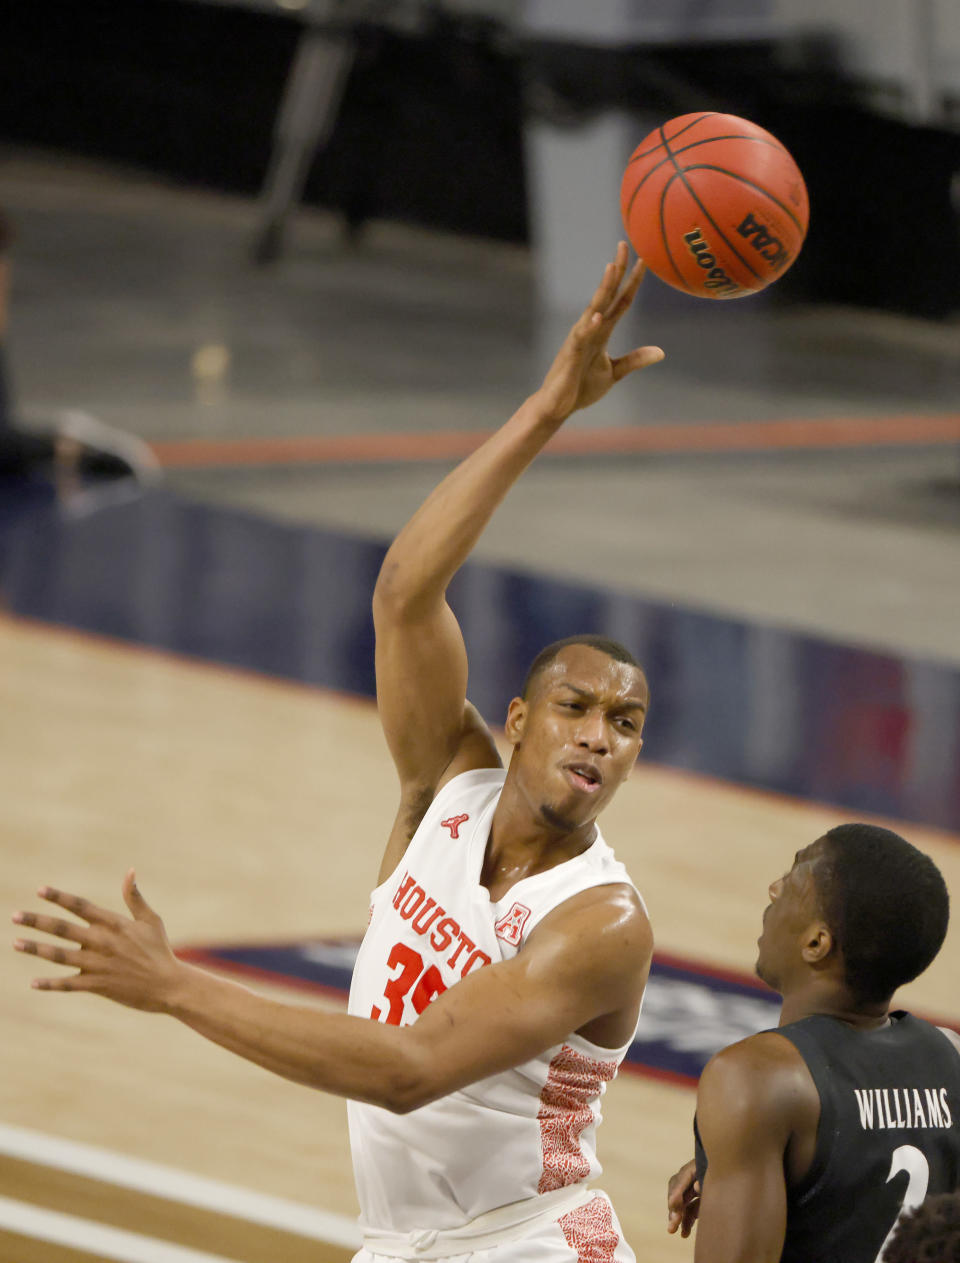 Houston forward Fabian White Jr. (35) makes a pass over Cincinnati guard Keith Williams (2) during the first half of an NCAA college basketball game in the final round of the American Athletic Conference men's tournament Sunday, March 14, 2021, in Fort Worth, Texas. (AP Photo/Ron Jenkins)